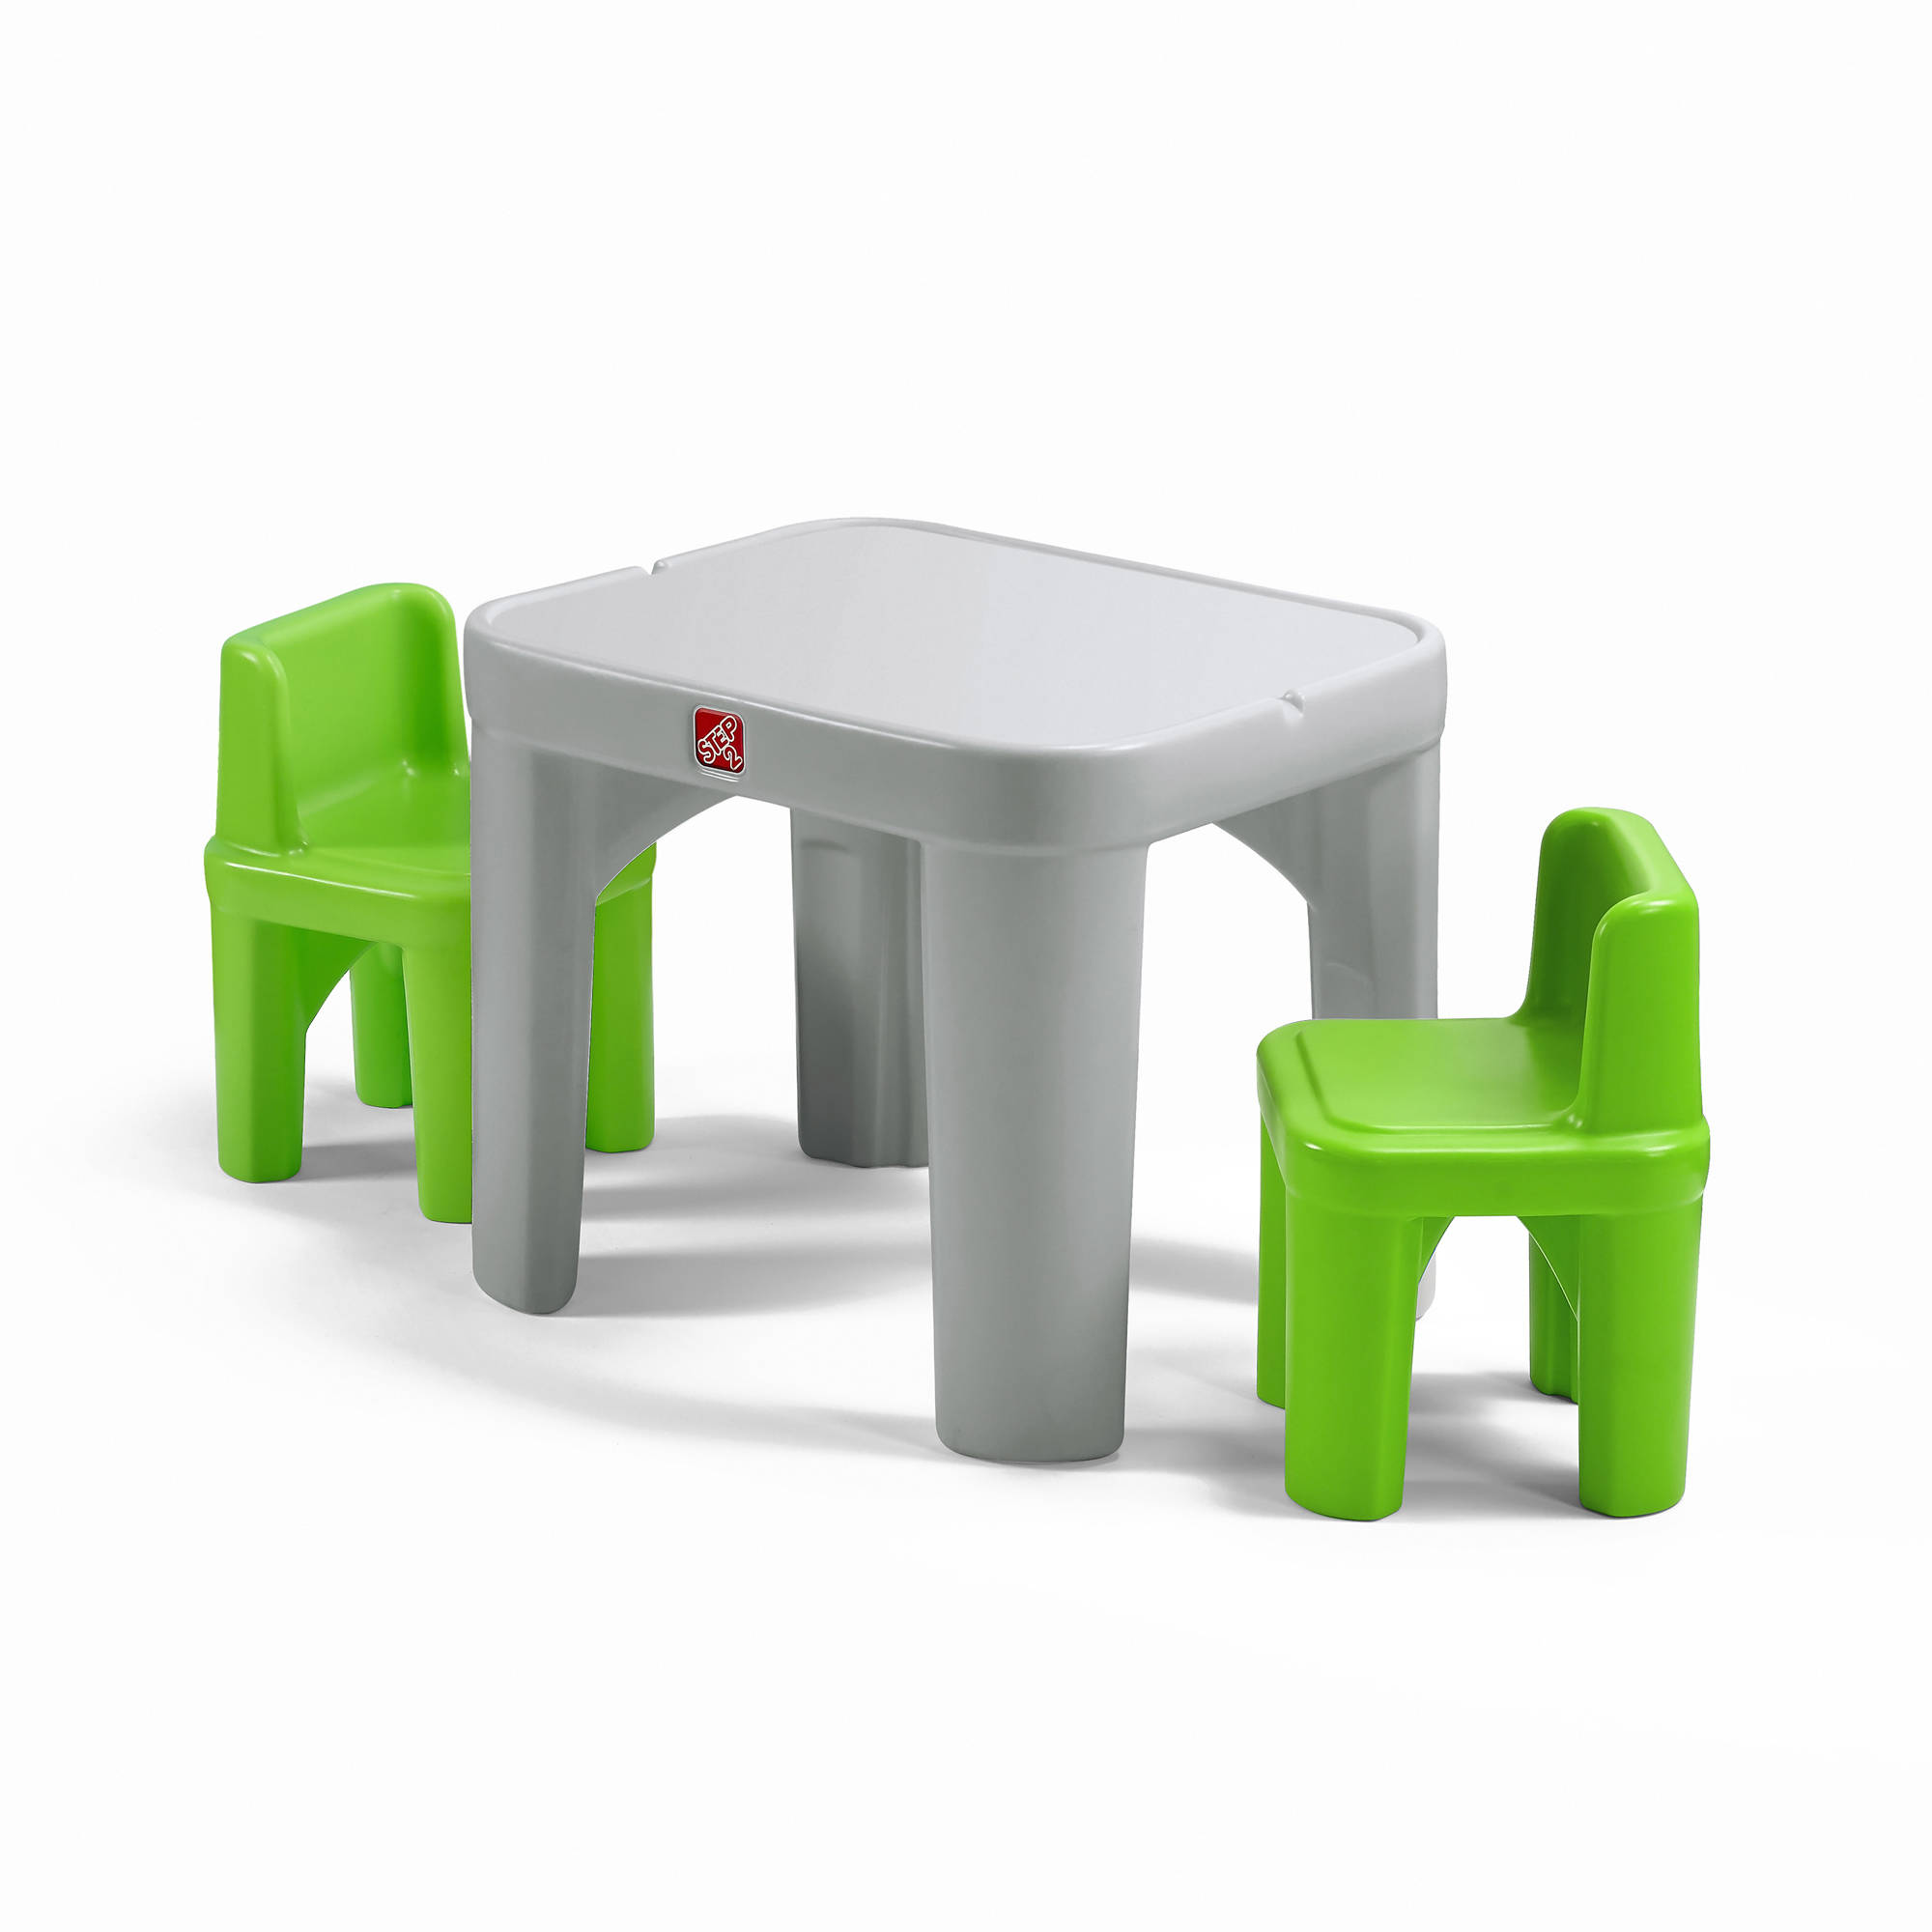 Mighty My Size Table and Chairs Walmart